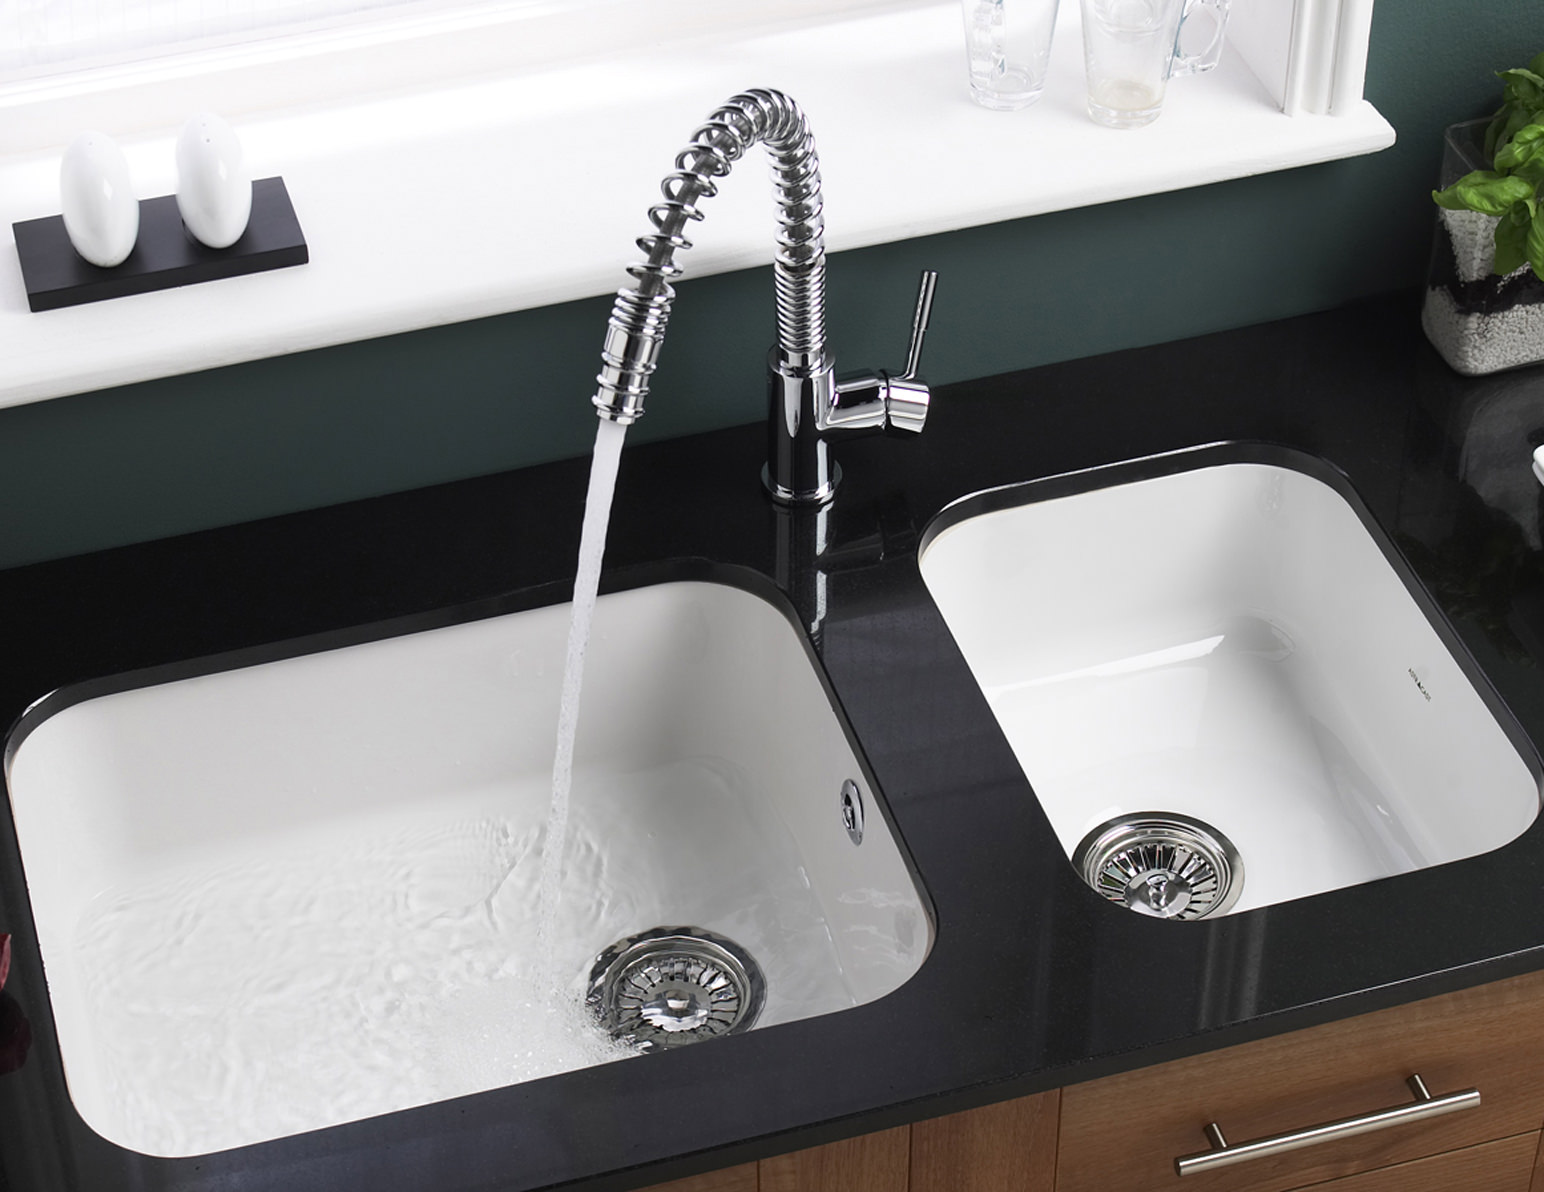 kitchen sink ceramic with 3666 on 3666 furthermore Bathroom Faucets For Granite Countertops further Modern Ceramic Tile Designs likewise Fabulous Small Kitchen Remodel Pictures On Kitchen Remodeling Ideas likewise 14 Luxury Small But Functional Bathroom Design Ideas.